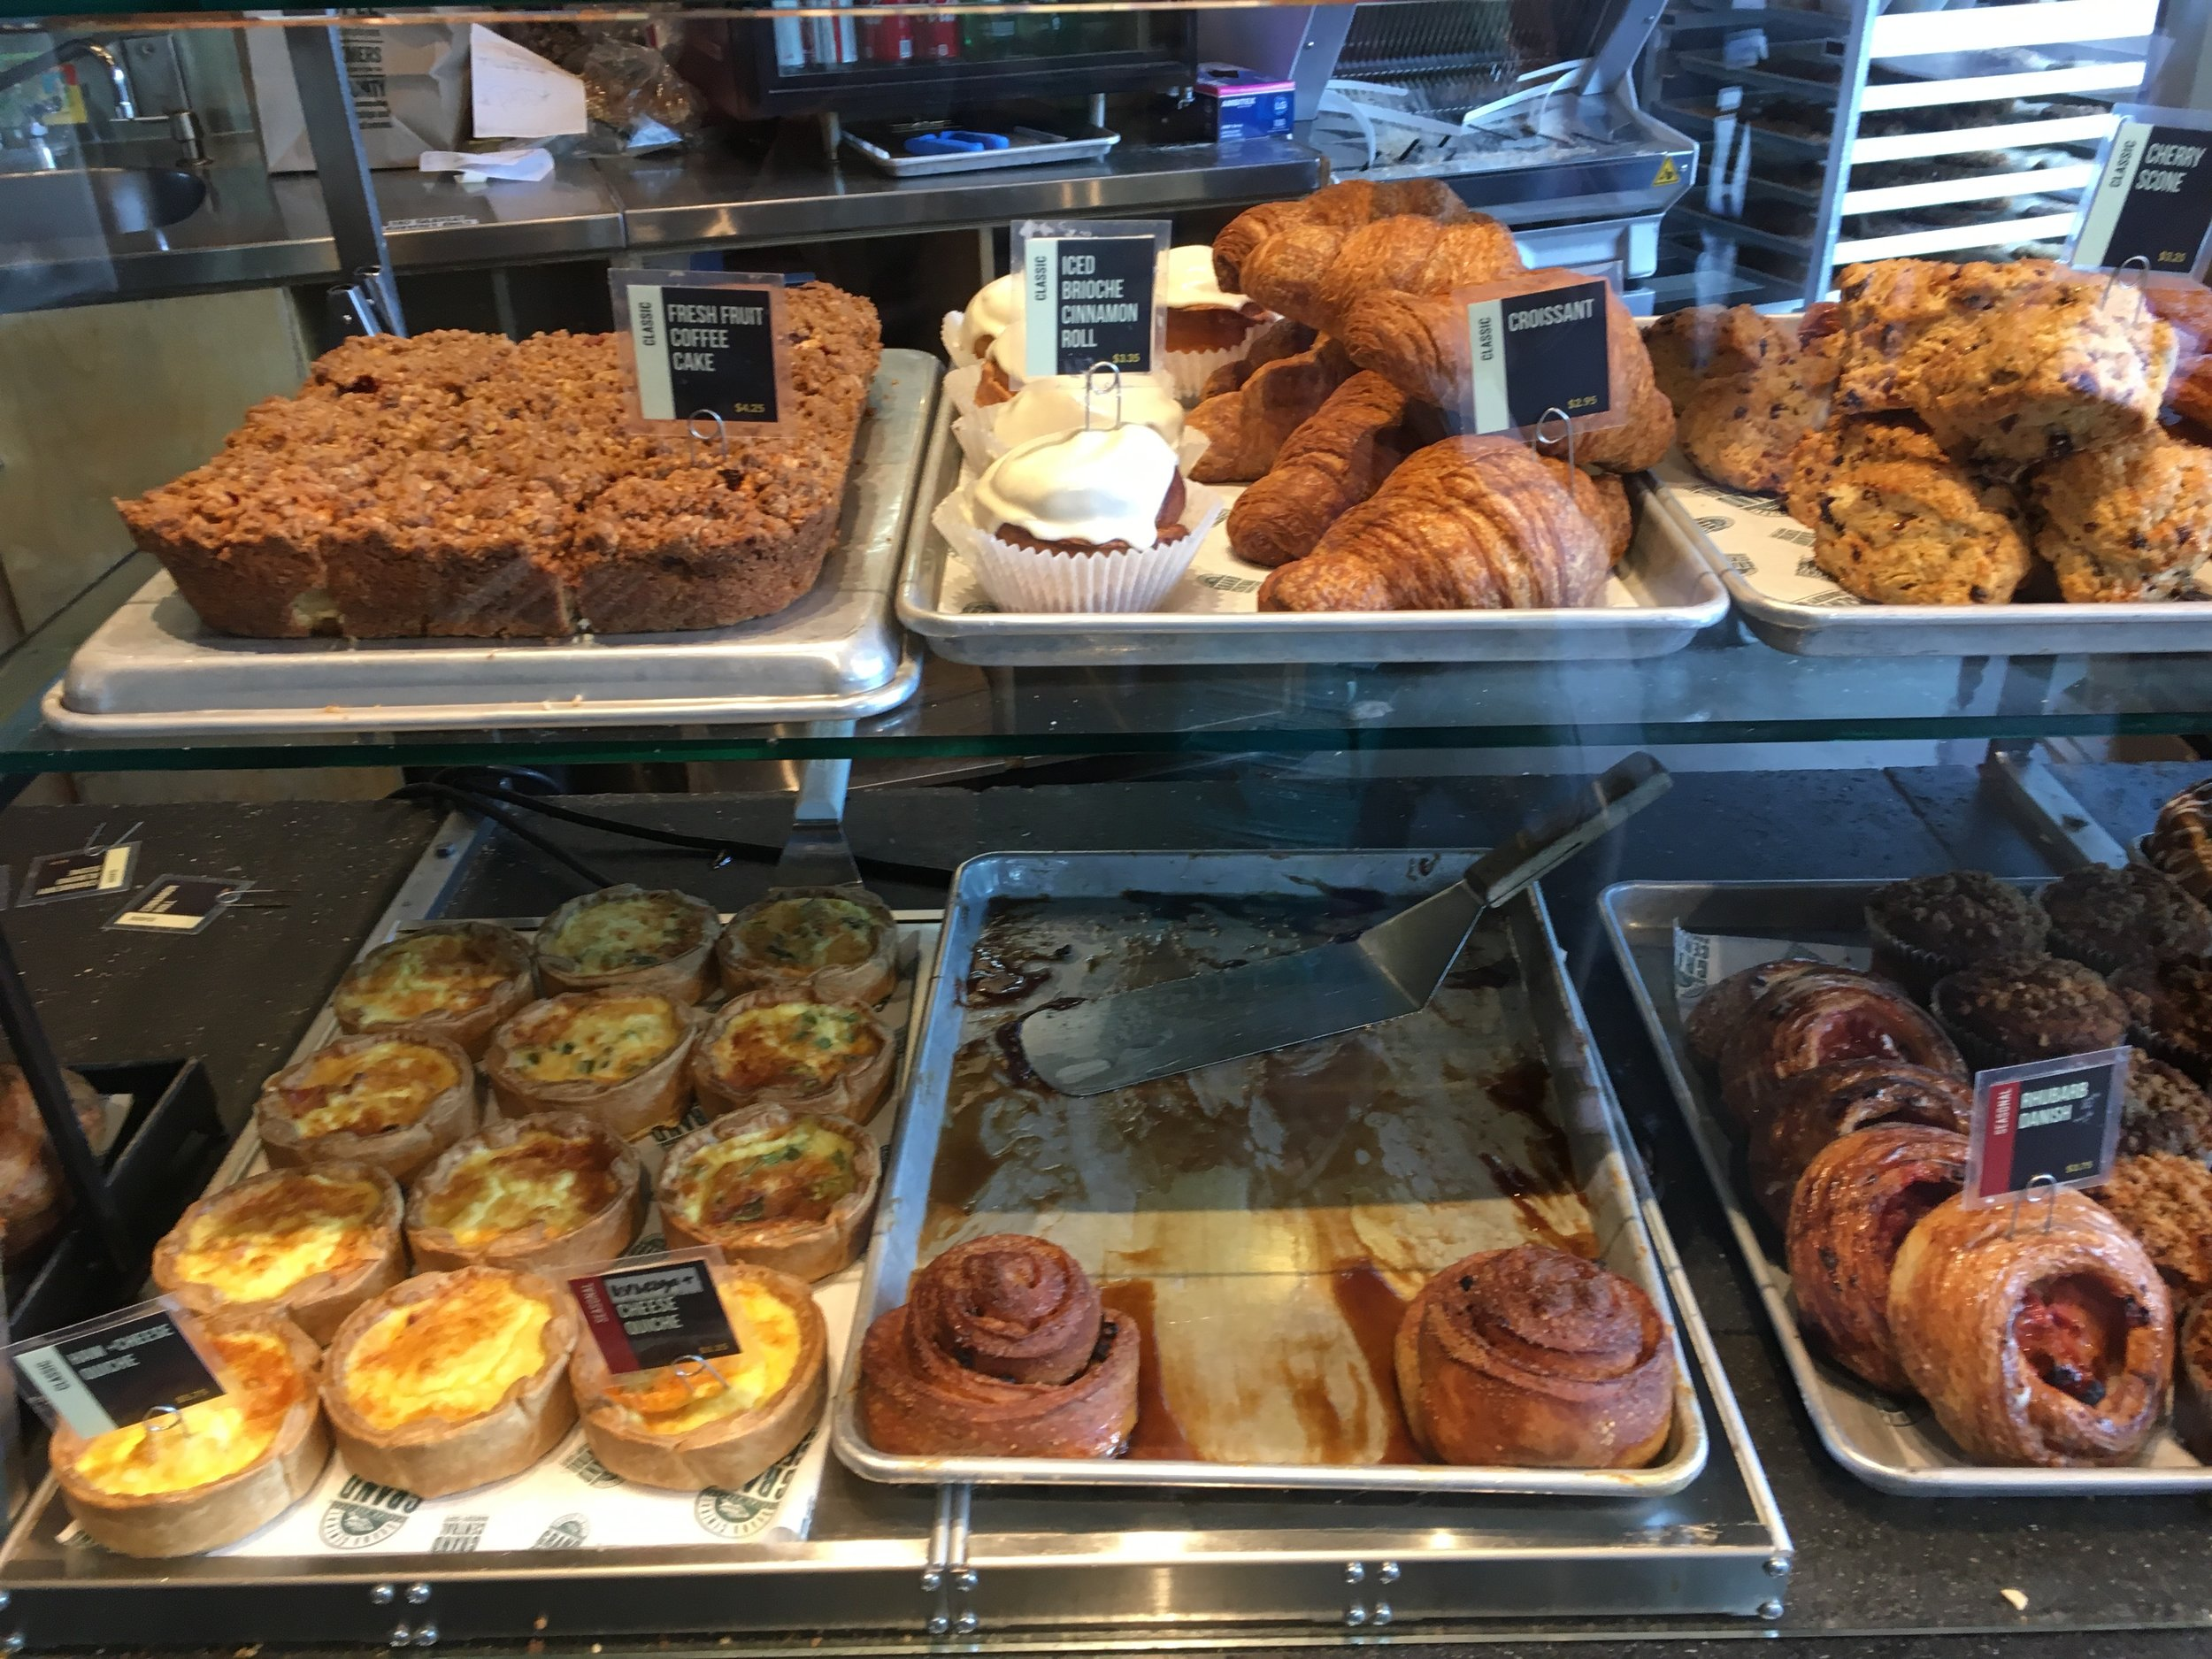 Grand Central Bakery offerings